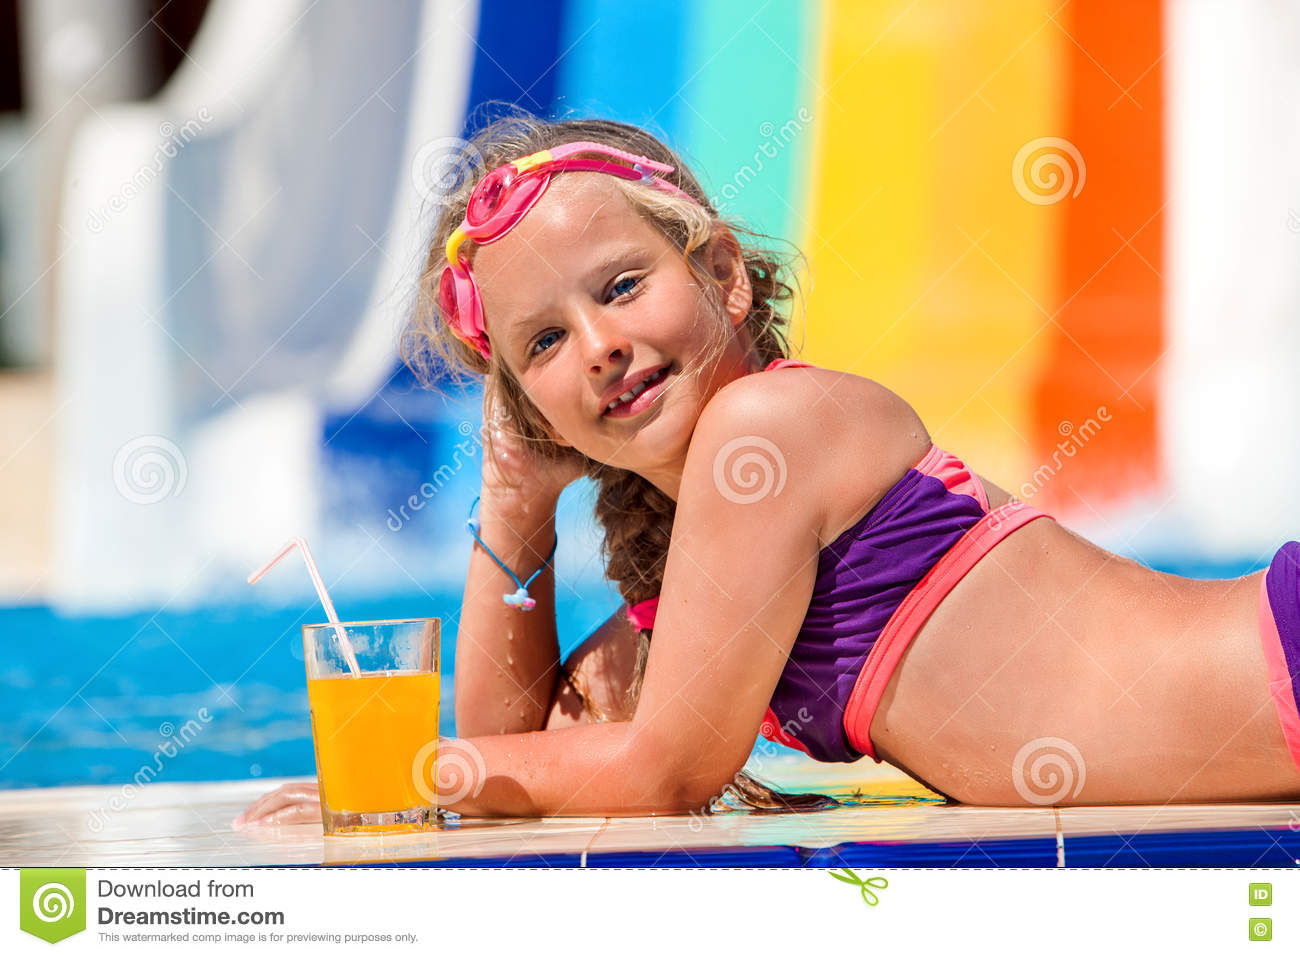 Child On Water Slide At Aquapark Drinking Cold Squeezed Orange Juice Stock Photo Image 72616018